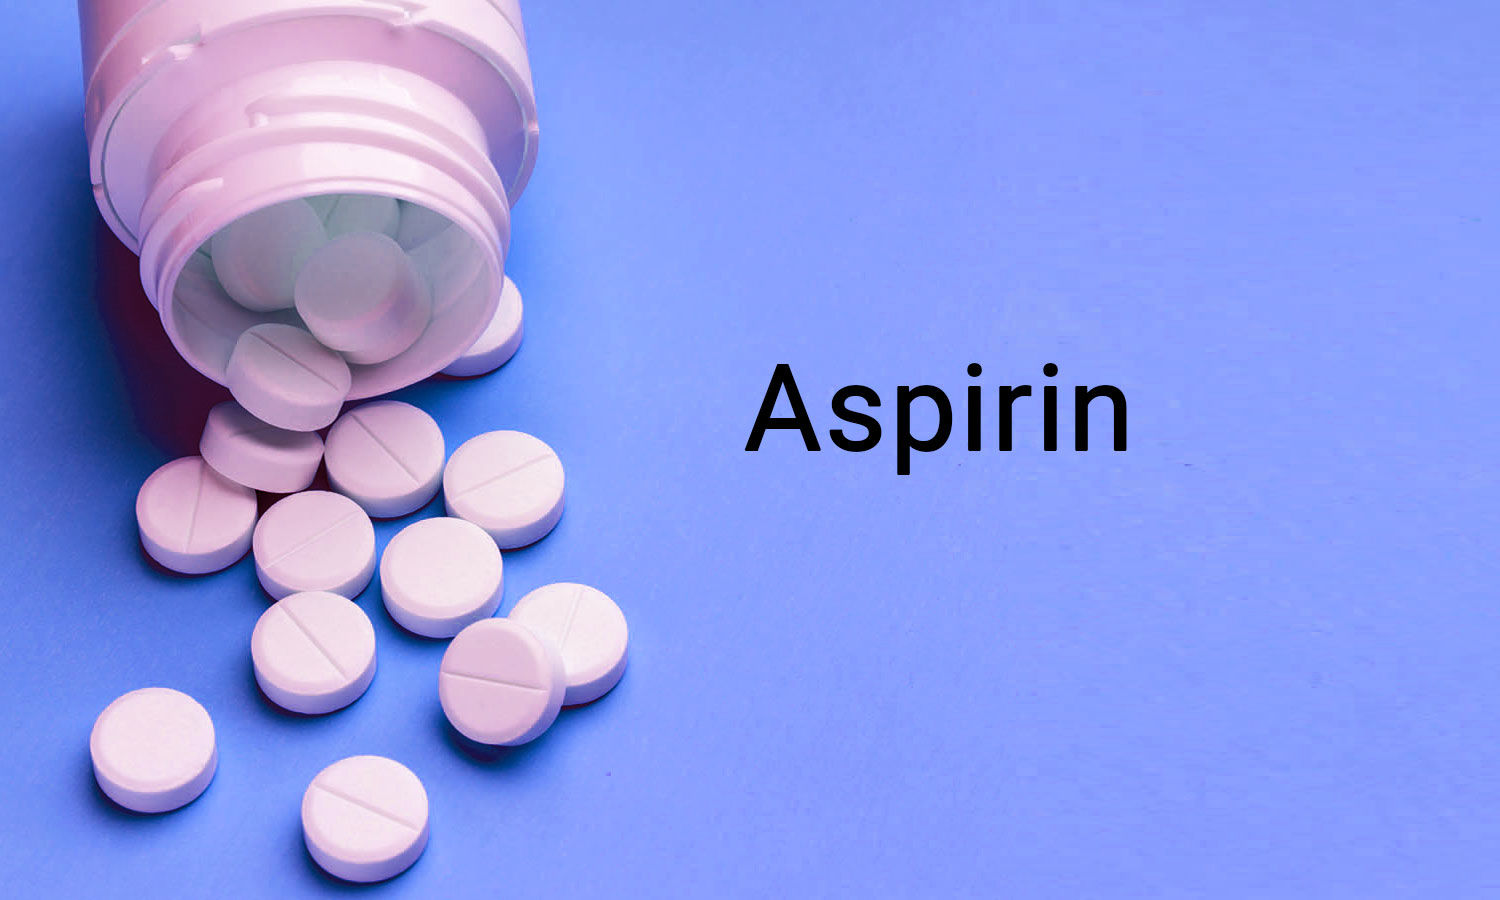 Aspirin may increase BMD and reduce fracture risk: Study